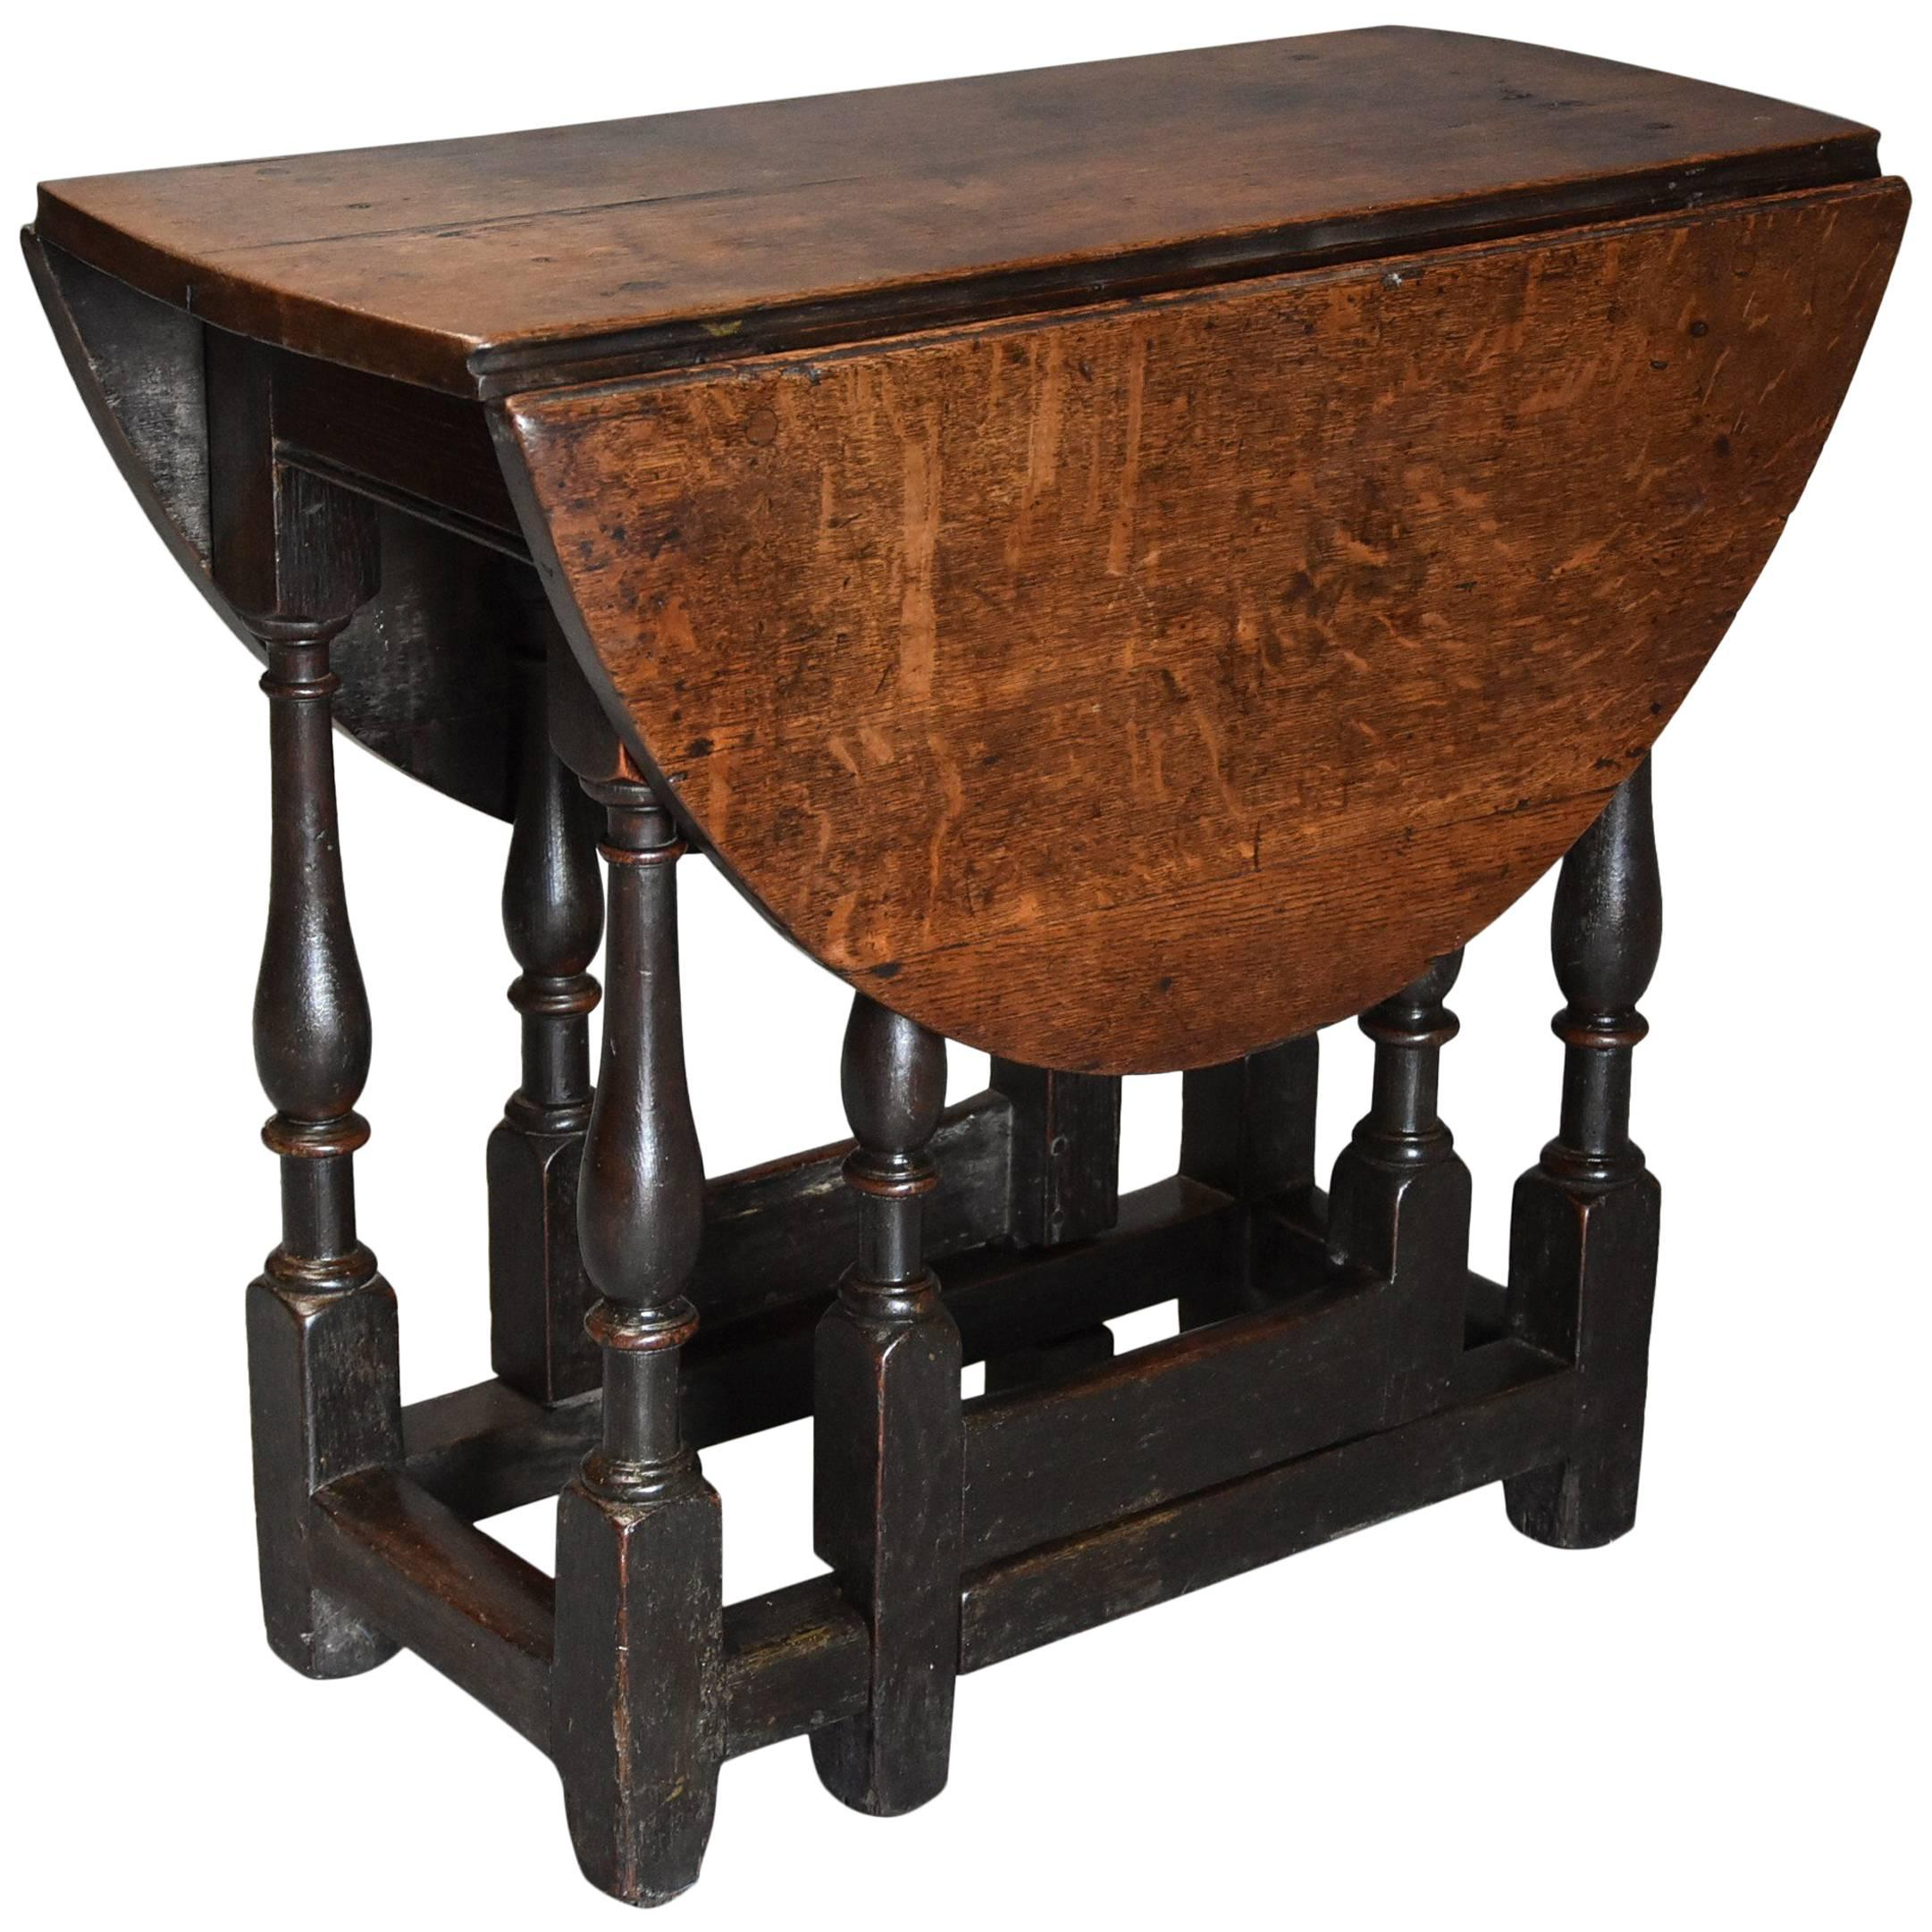 Late 17th Century Oak Gateleg Table Of Small Proportions And Good Patina